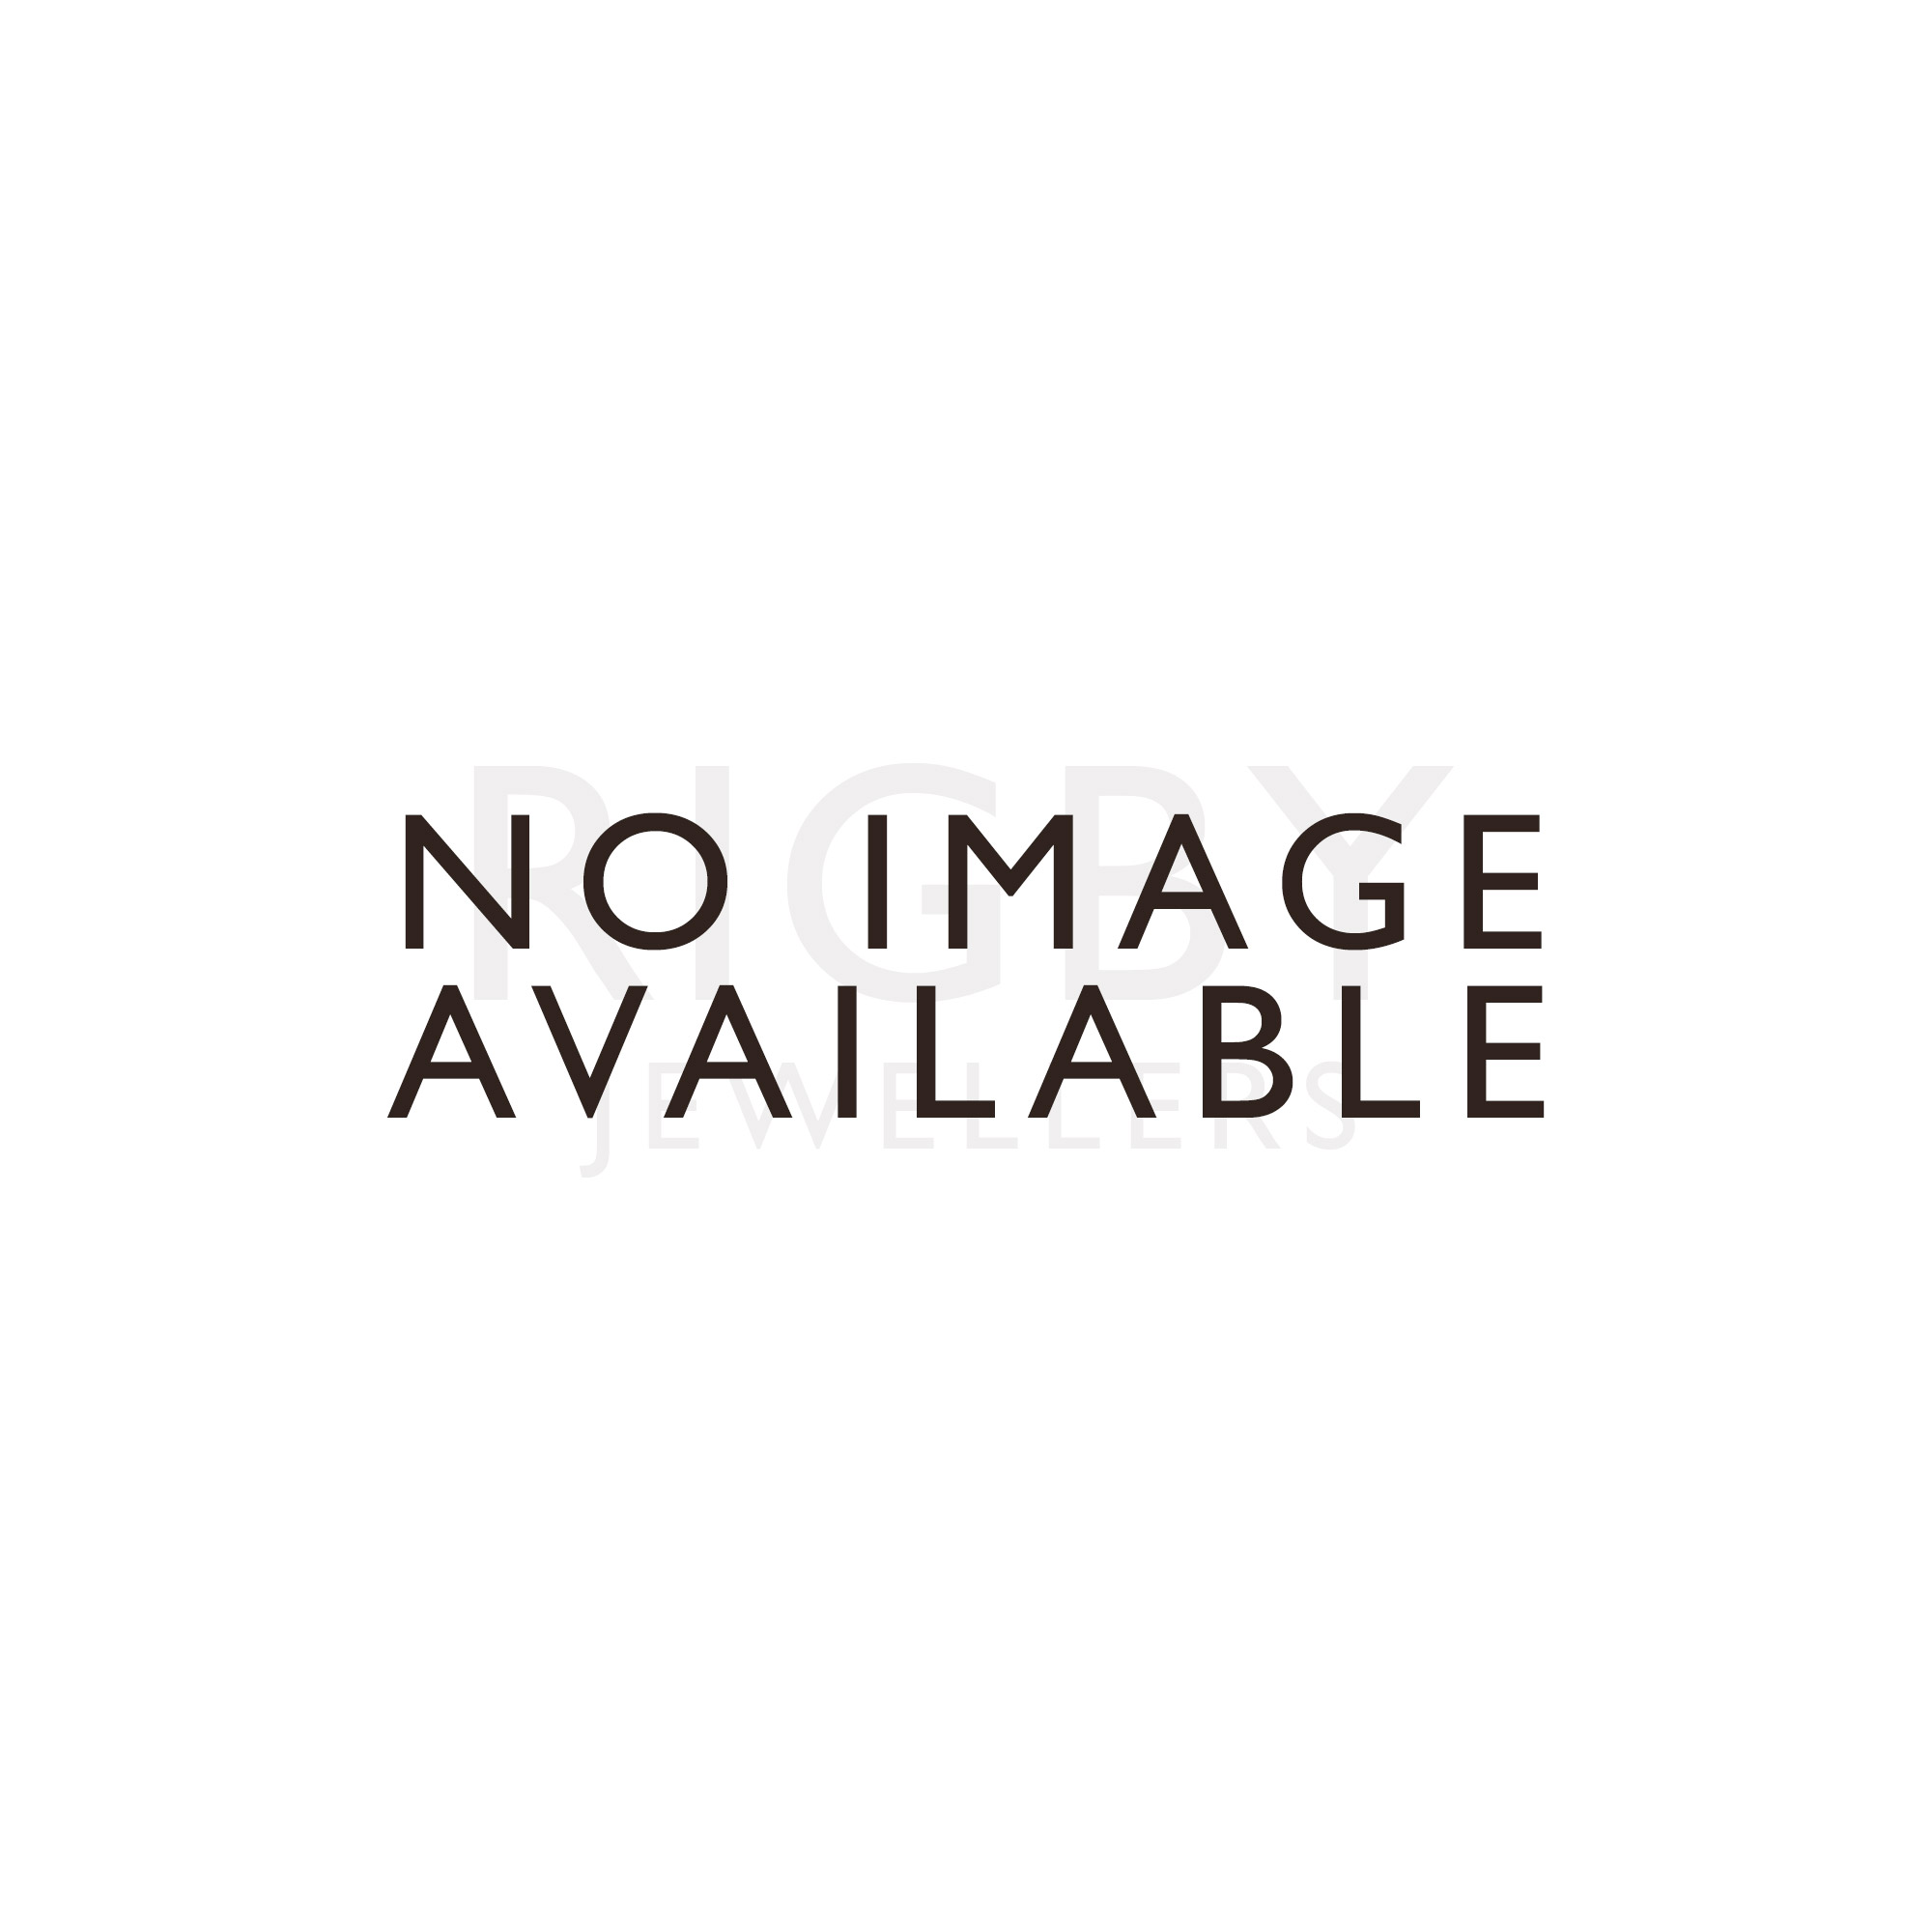 Dark Wooden Westminster Chime Battery Wall Clock QXH039B